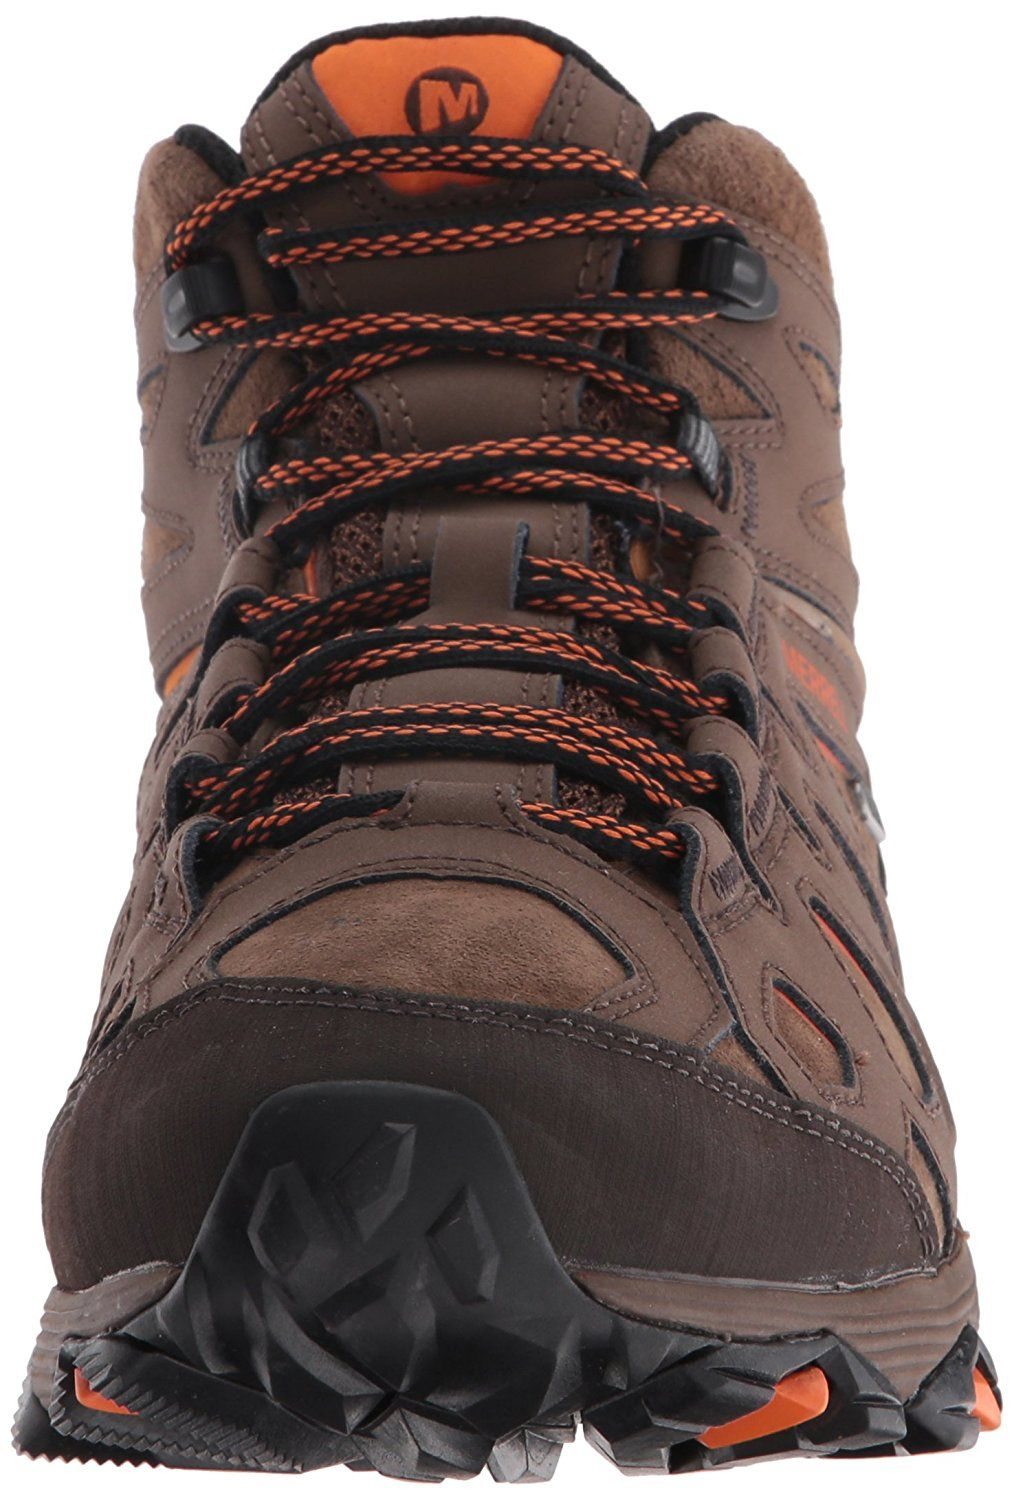 b0cc3a156a8 Merrell Men's Moab Fst Ltr Mid Waterproof Hiking Boot -- Details can ...